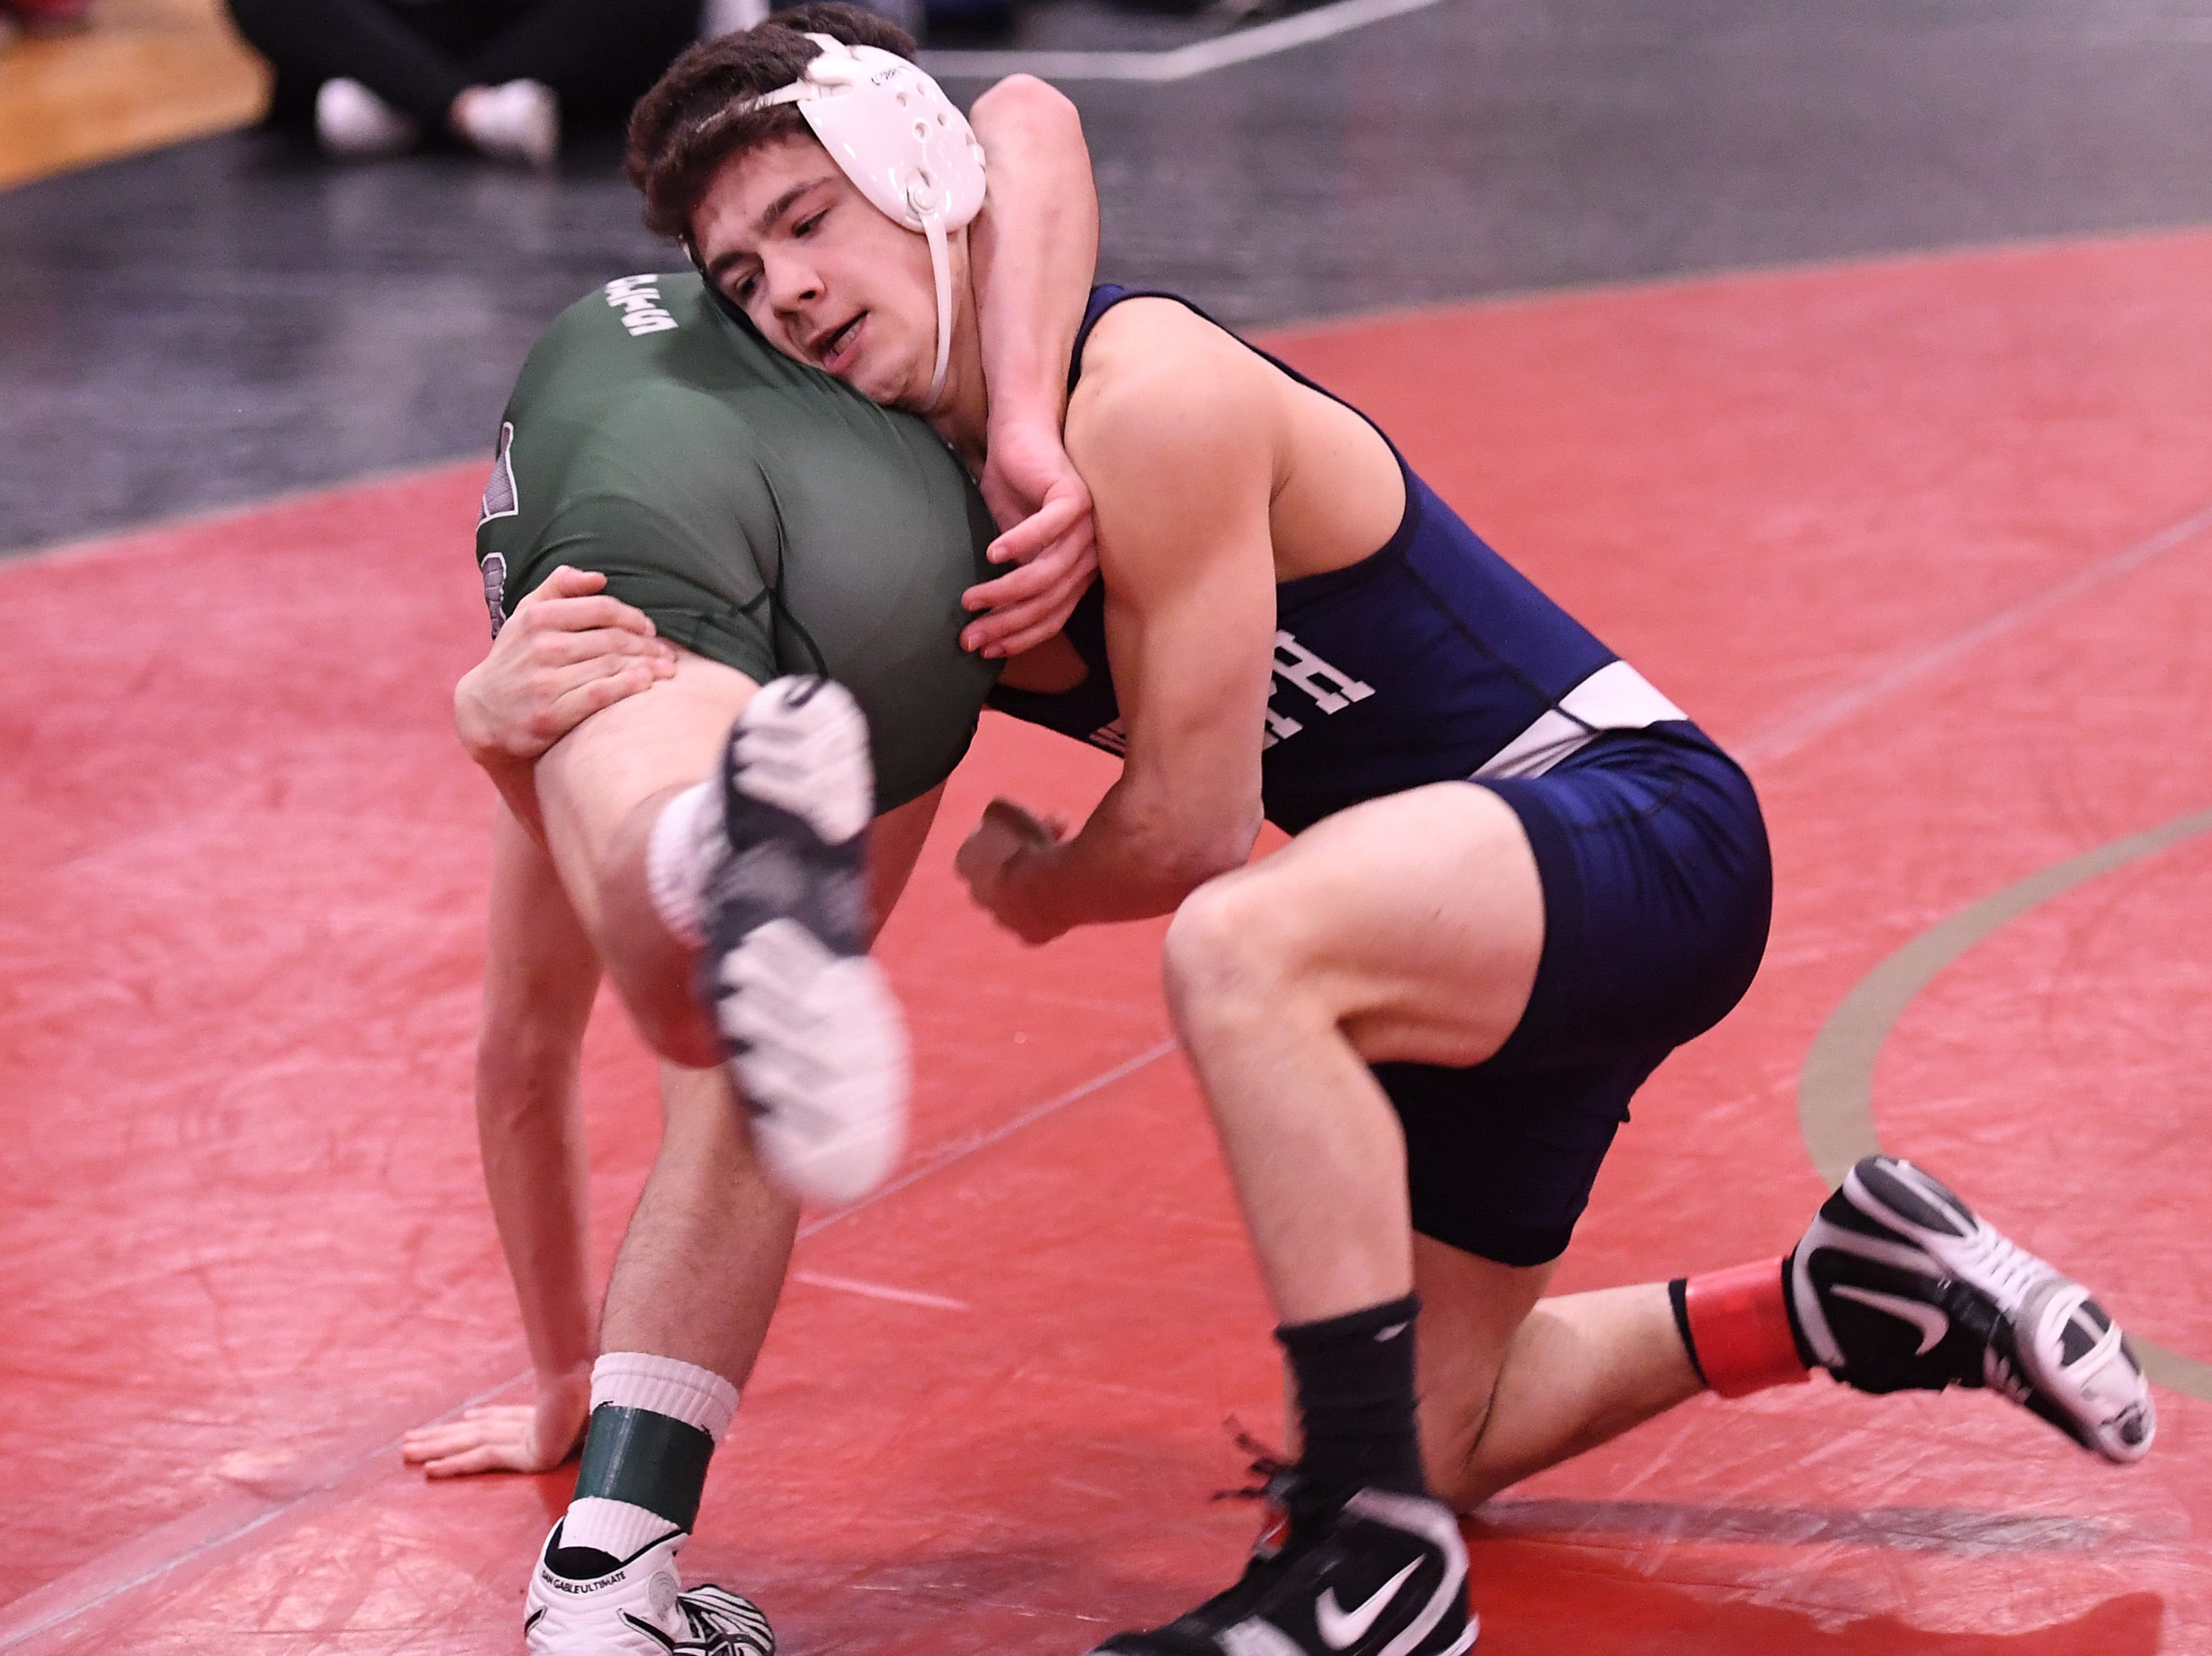 Morris County Tournament wrestling opening round at  Mount Olive High School on Friday, January 25, 2019. (right) Anthony Viespoli of Randolph vs. Christopher DiRubba of Kinnelon in their 132 pound match.